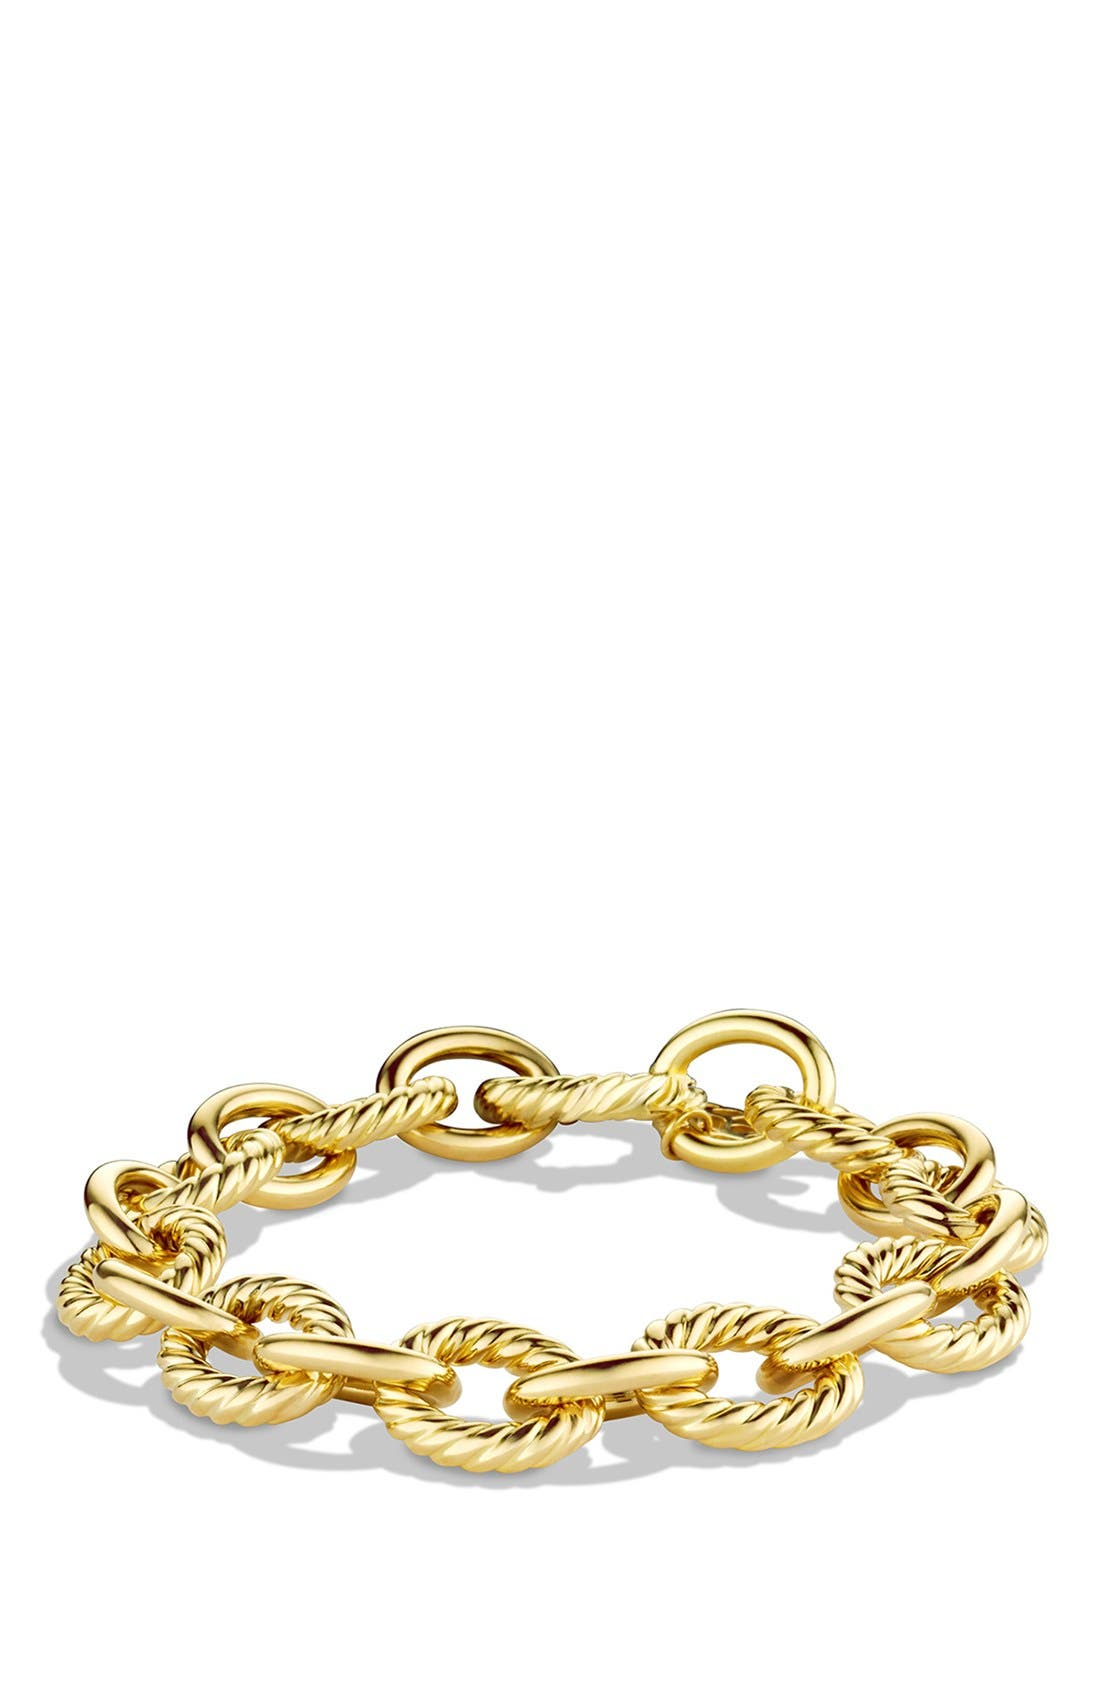 Main Image - David Yurman 'Oval' Large Link Bracelet in Gold